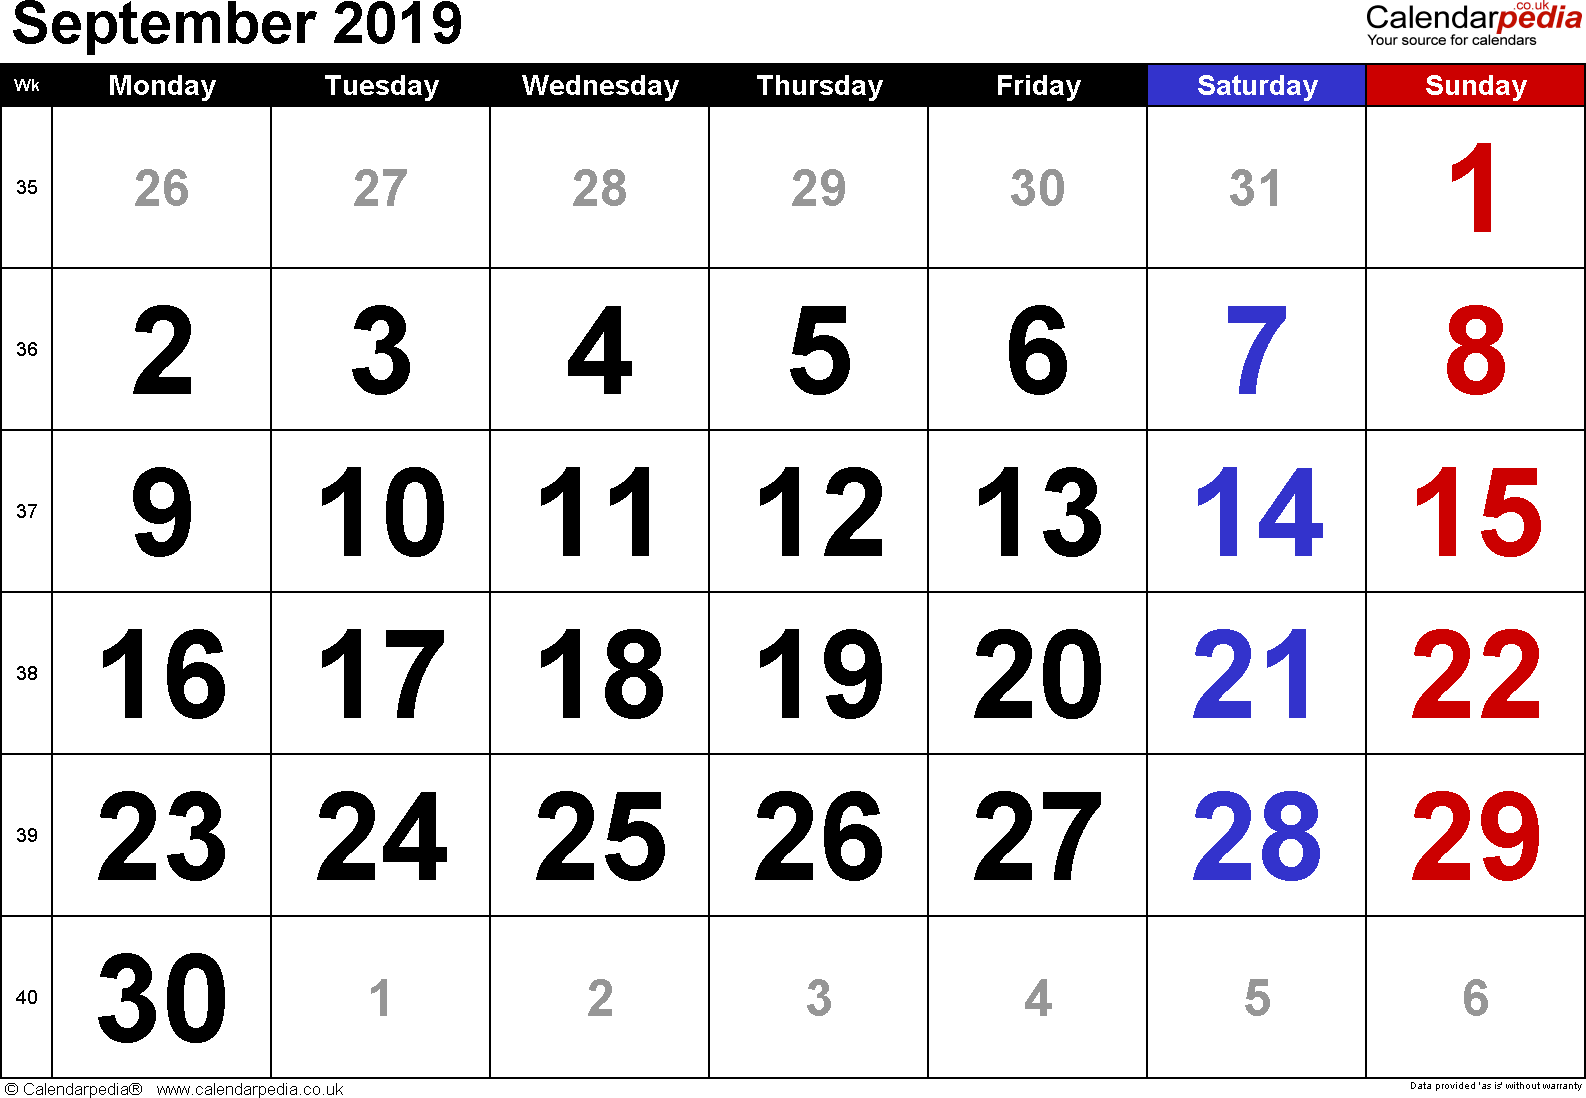 Calendar September 2019, landscape orientation, large numerals, 1 page, with UK bank holidays and week numbers